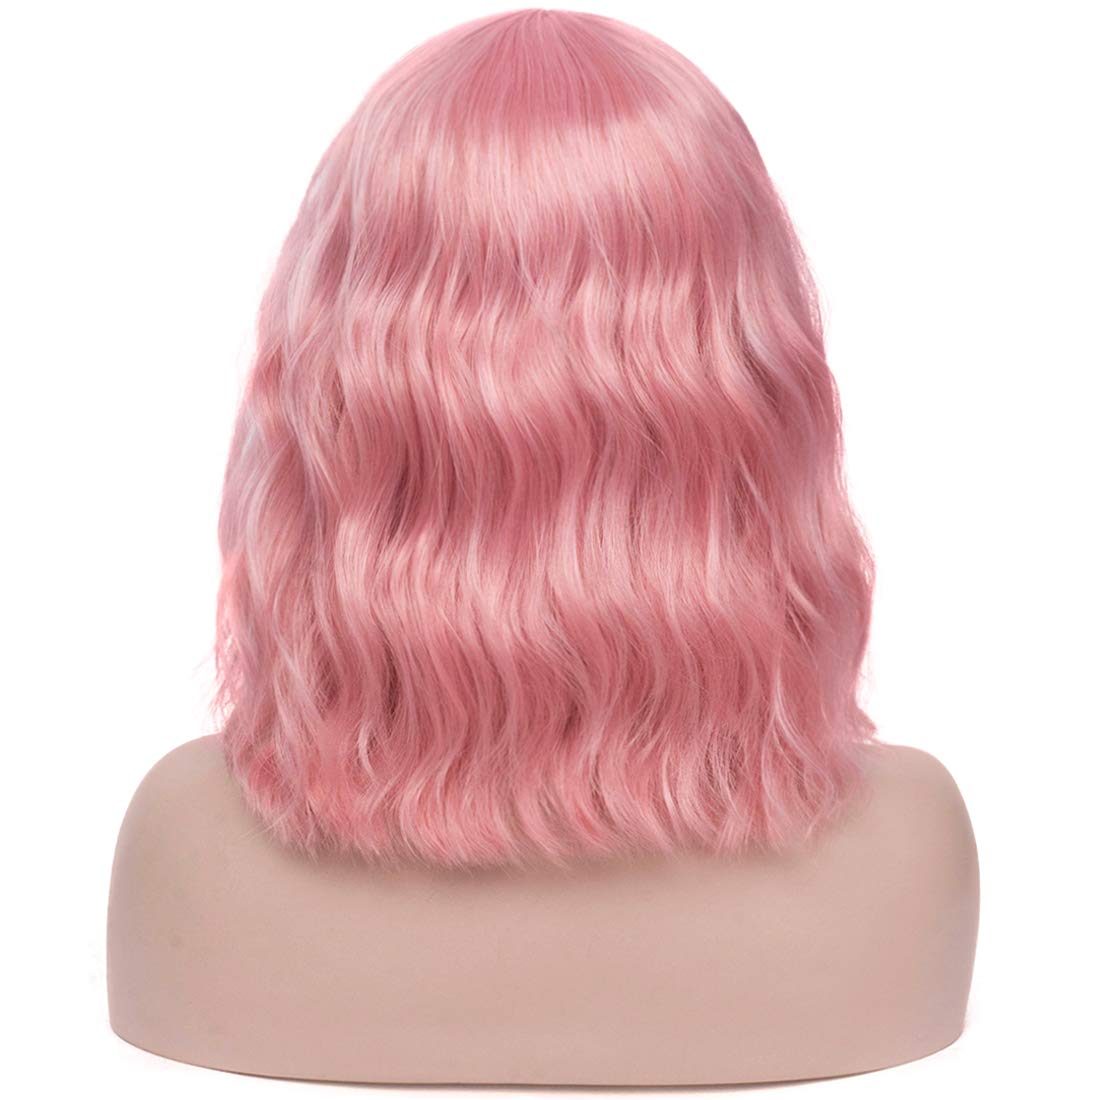 Mersi Women Black Wig Short Wavy Bob Hair Wig with Bangs Natural Synthetic Cosplay Costume Wigs for Halloween Party S067